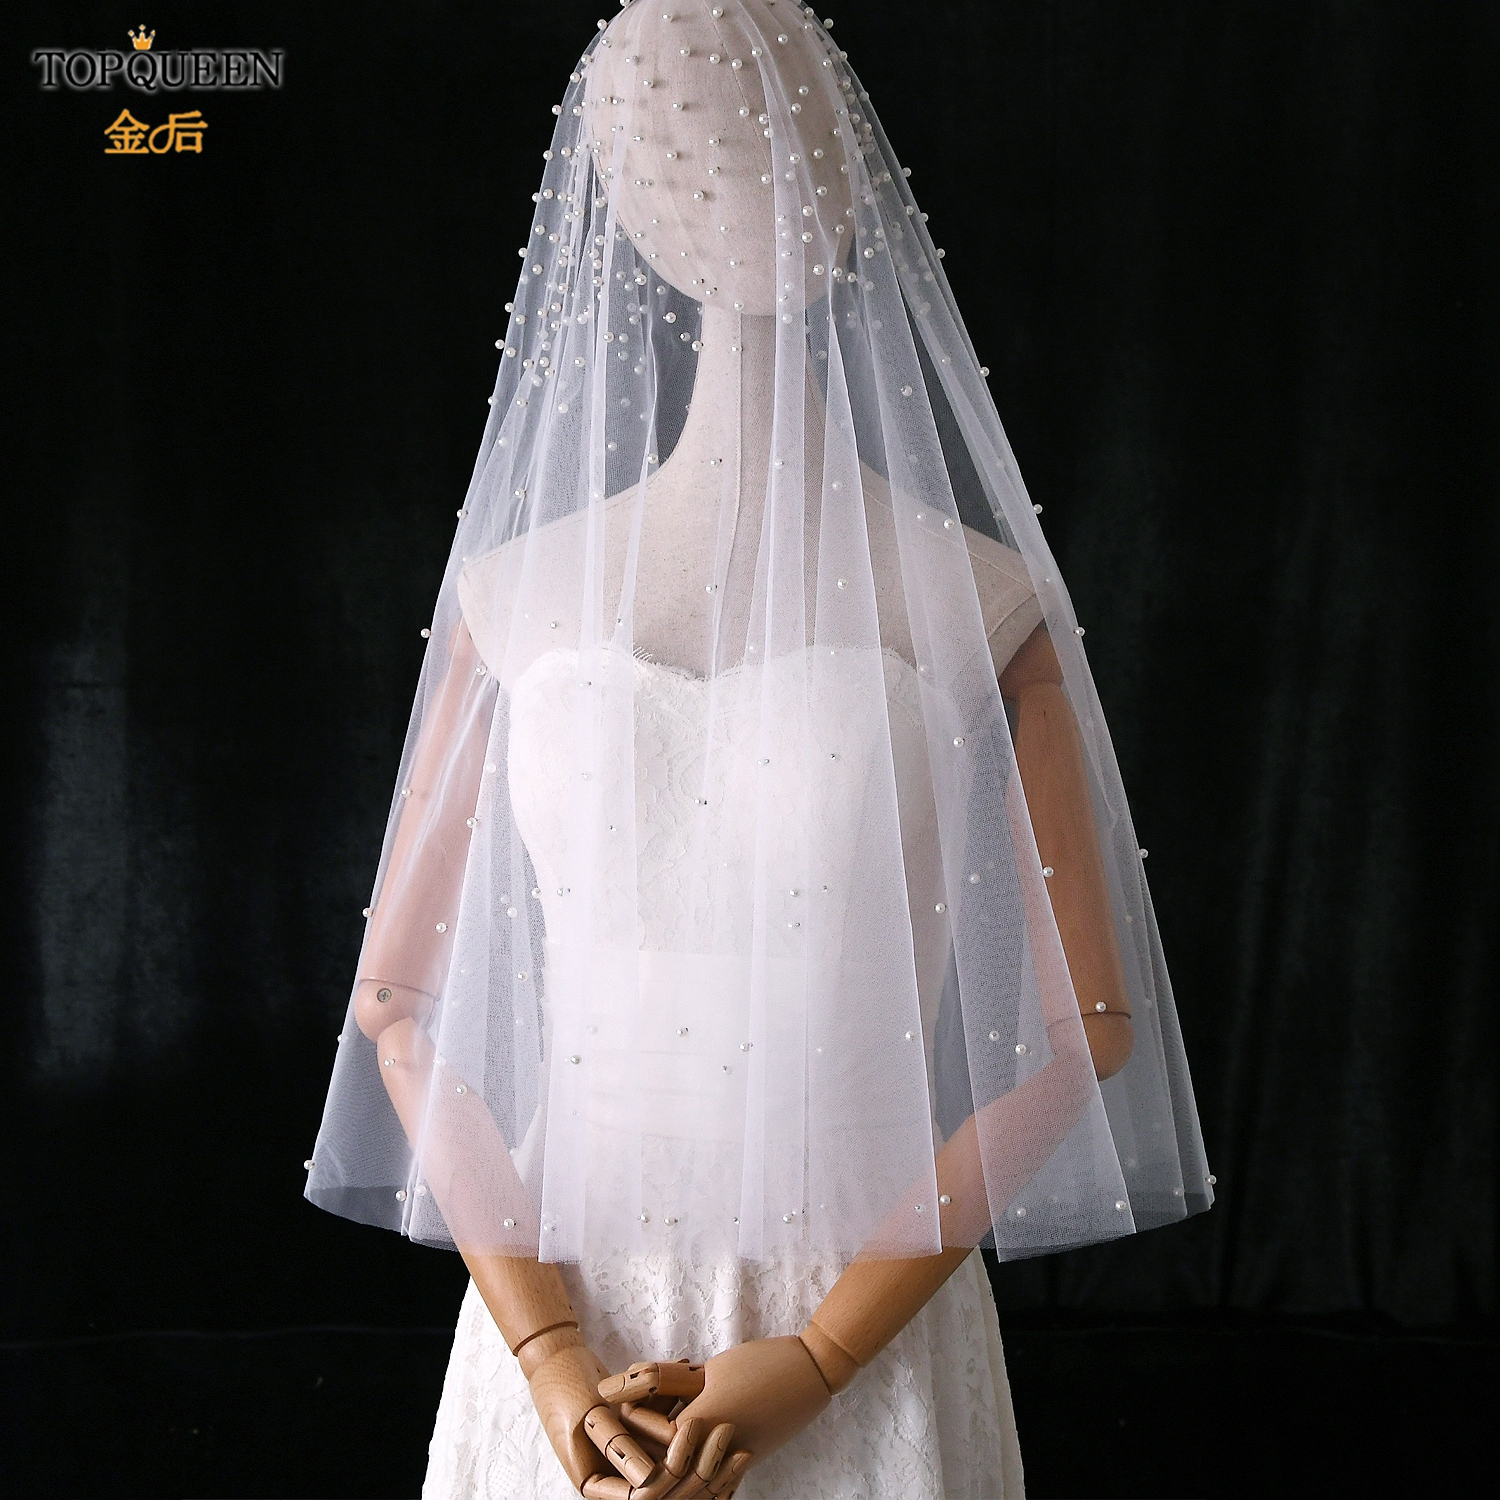 TOPQUEEN V08 Wedding Veils and Headpieces  Bridal Veil Headband  Pearl Veils for Brides  White Veil for Women Ivory Veil